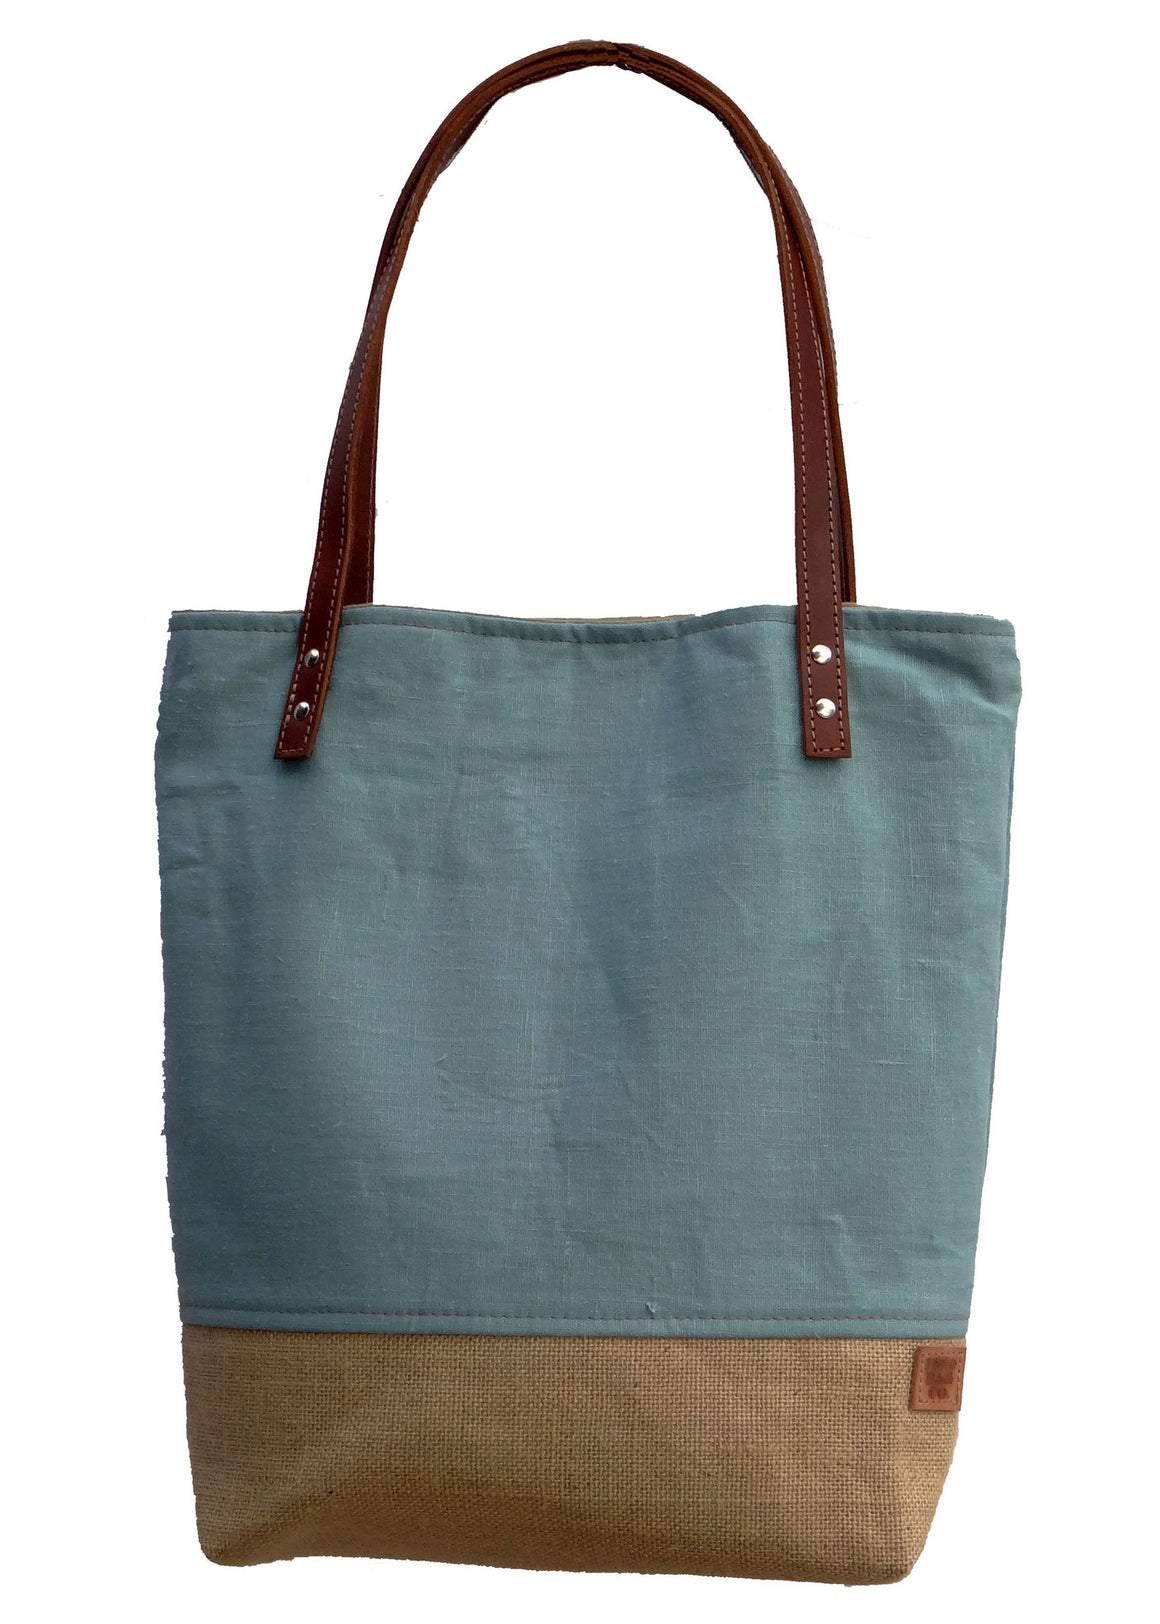 Blue European Linen Burlap Tote Bag - 1820 Bag Co.